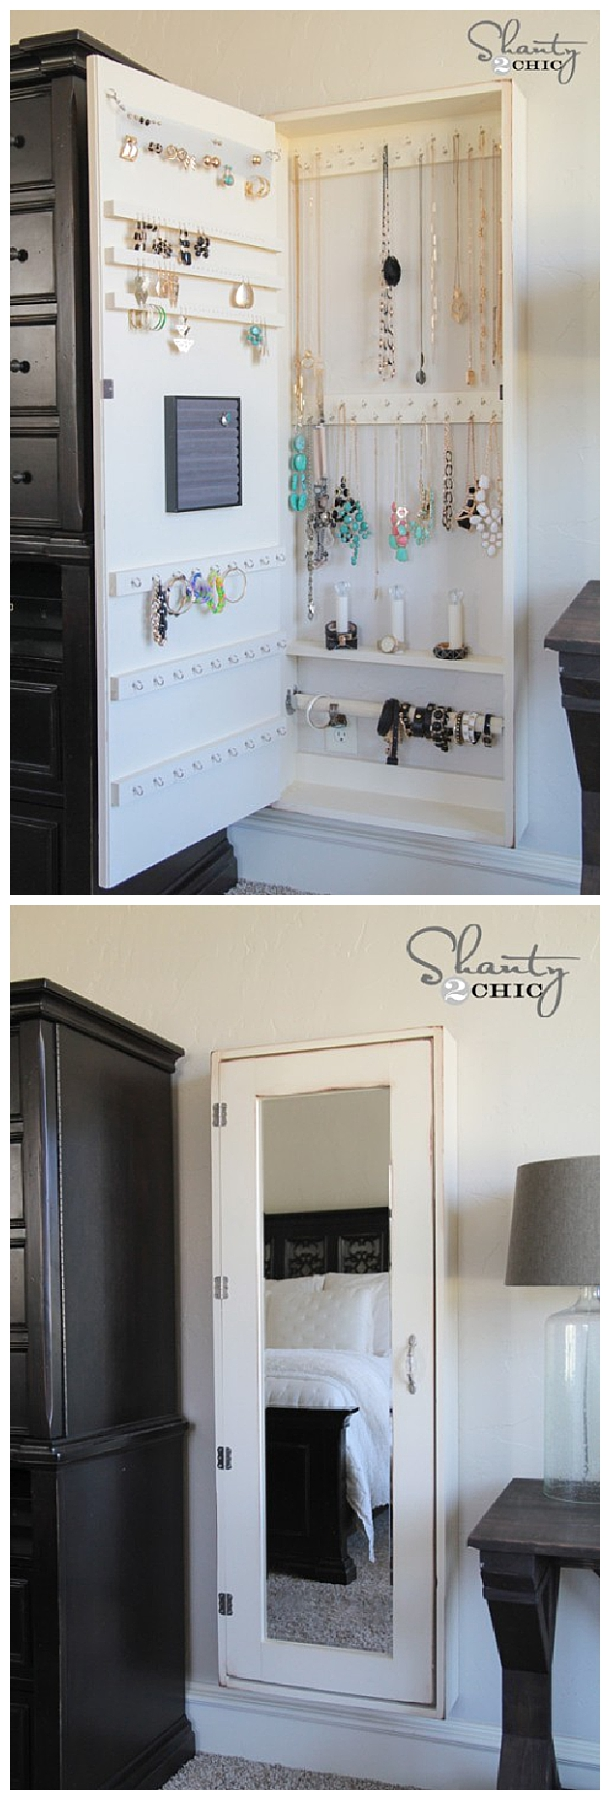 DIY Bathroom Organization Ideas   DIY Jewelry Organizer Cabinet And Full  Length Mirror All In One